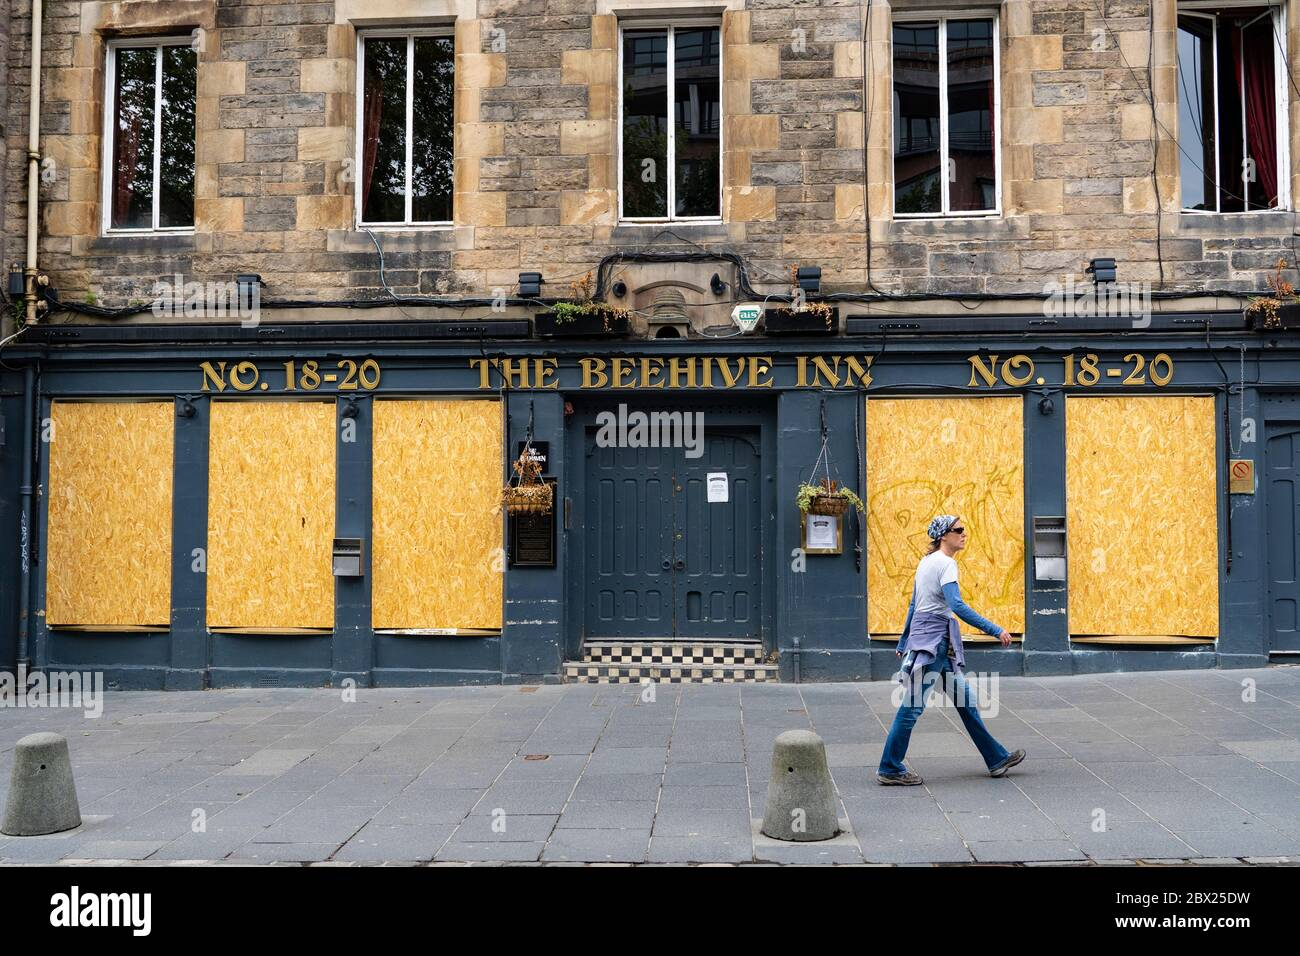 Edinburgh, Scotland, UK. 4 June 2020.  As Covid-19 lockdown relaxation continues in Scotland very few shops and businesses are open. Streets remain quiet and pubs and, with a few exceptions, bars and pubs are closed. Pictured; Closed and boarded up pubs in grass market in Old Town. Iain Masterton/Alamy Live News Stock Photo